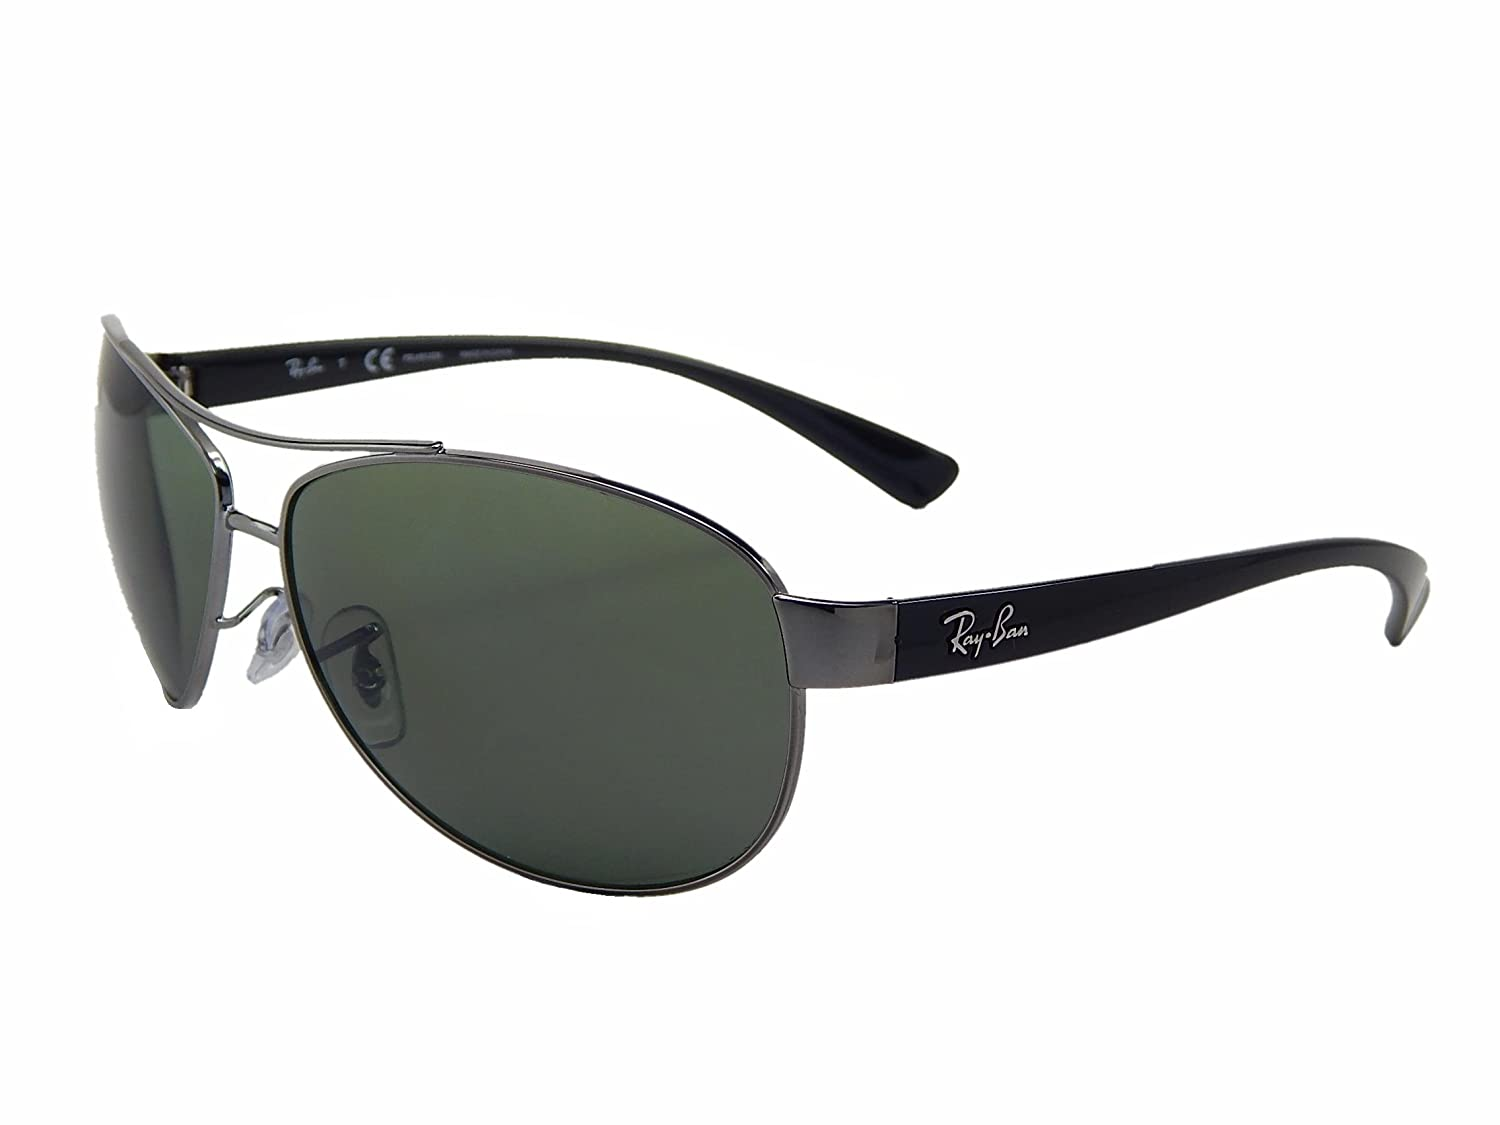 f9e6f0d220 New Ray Ban RB3386 004 9A Gunmetal  Green Classic 63mm Polarized Sunglasses   Amazon.co.uk  Clothing